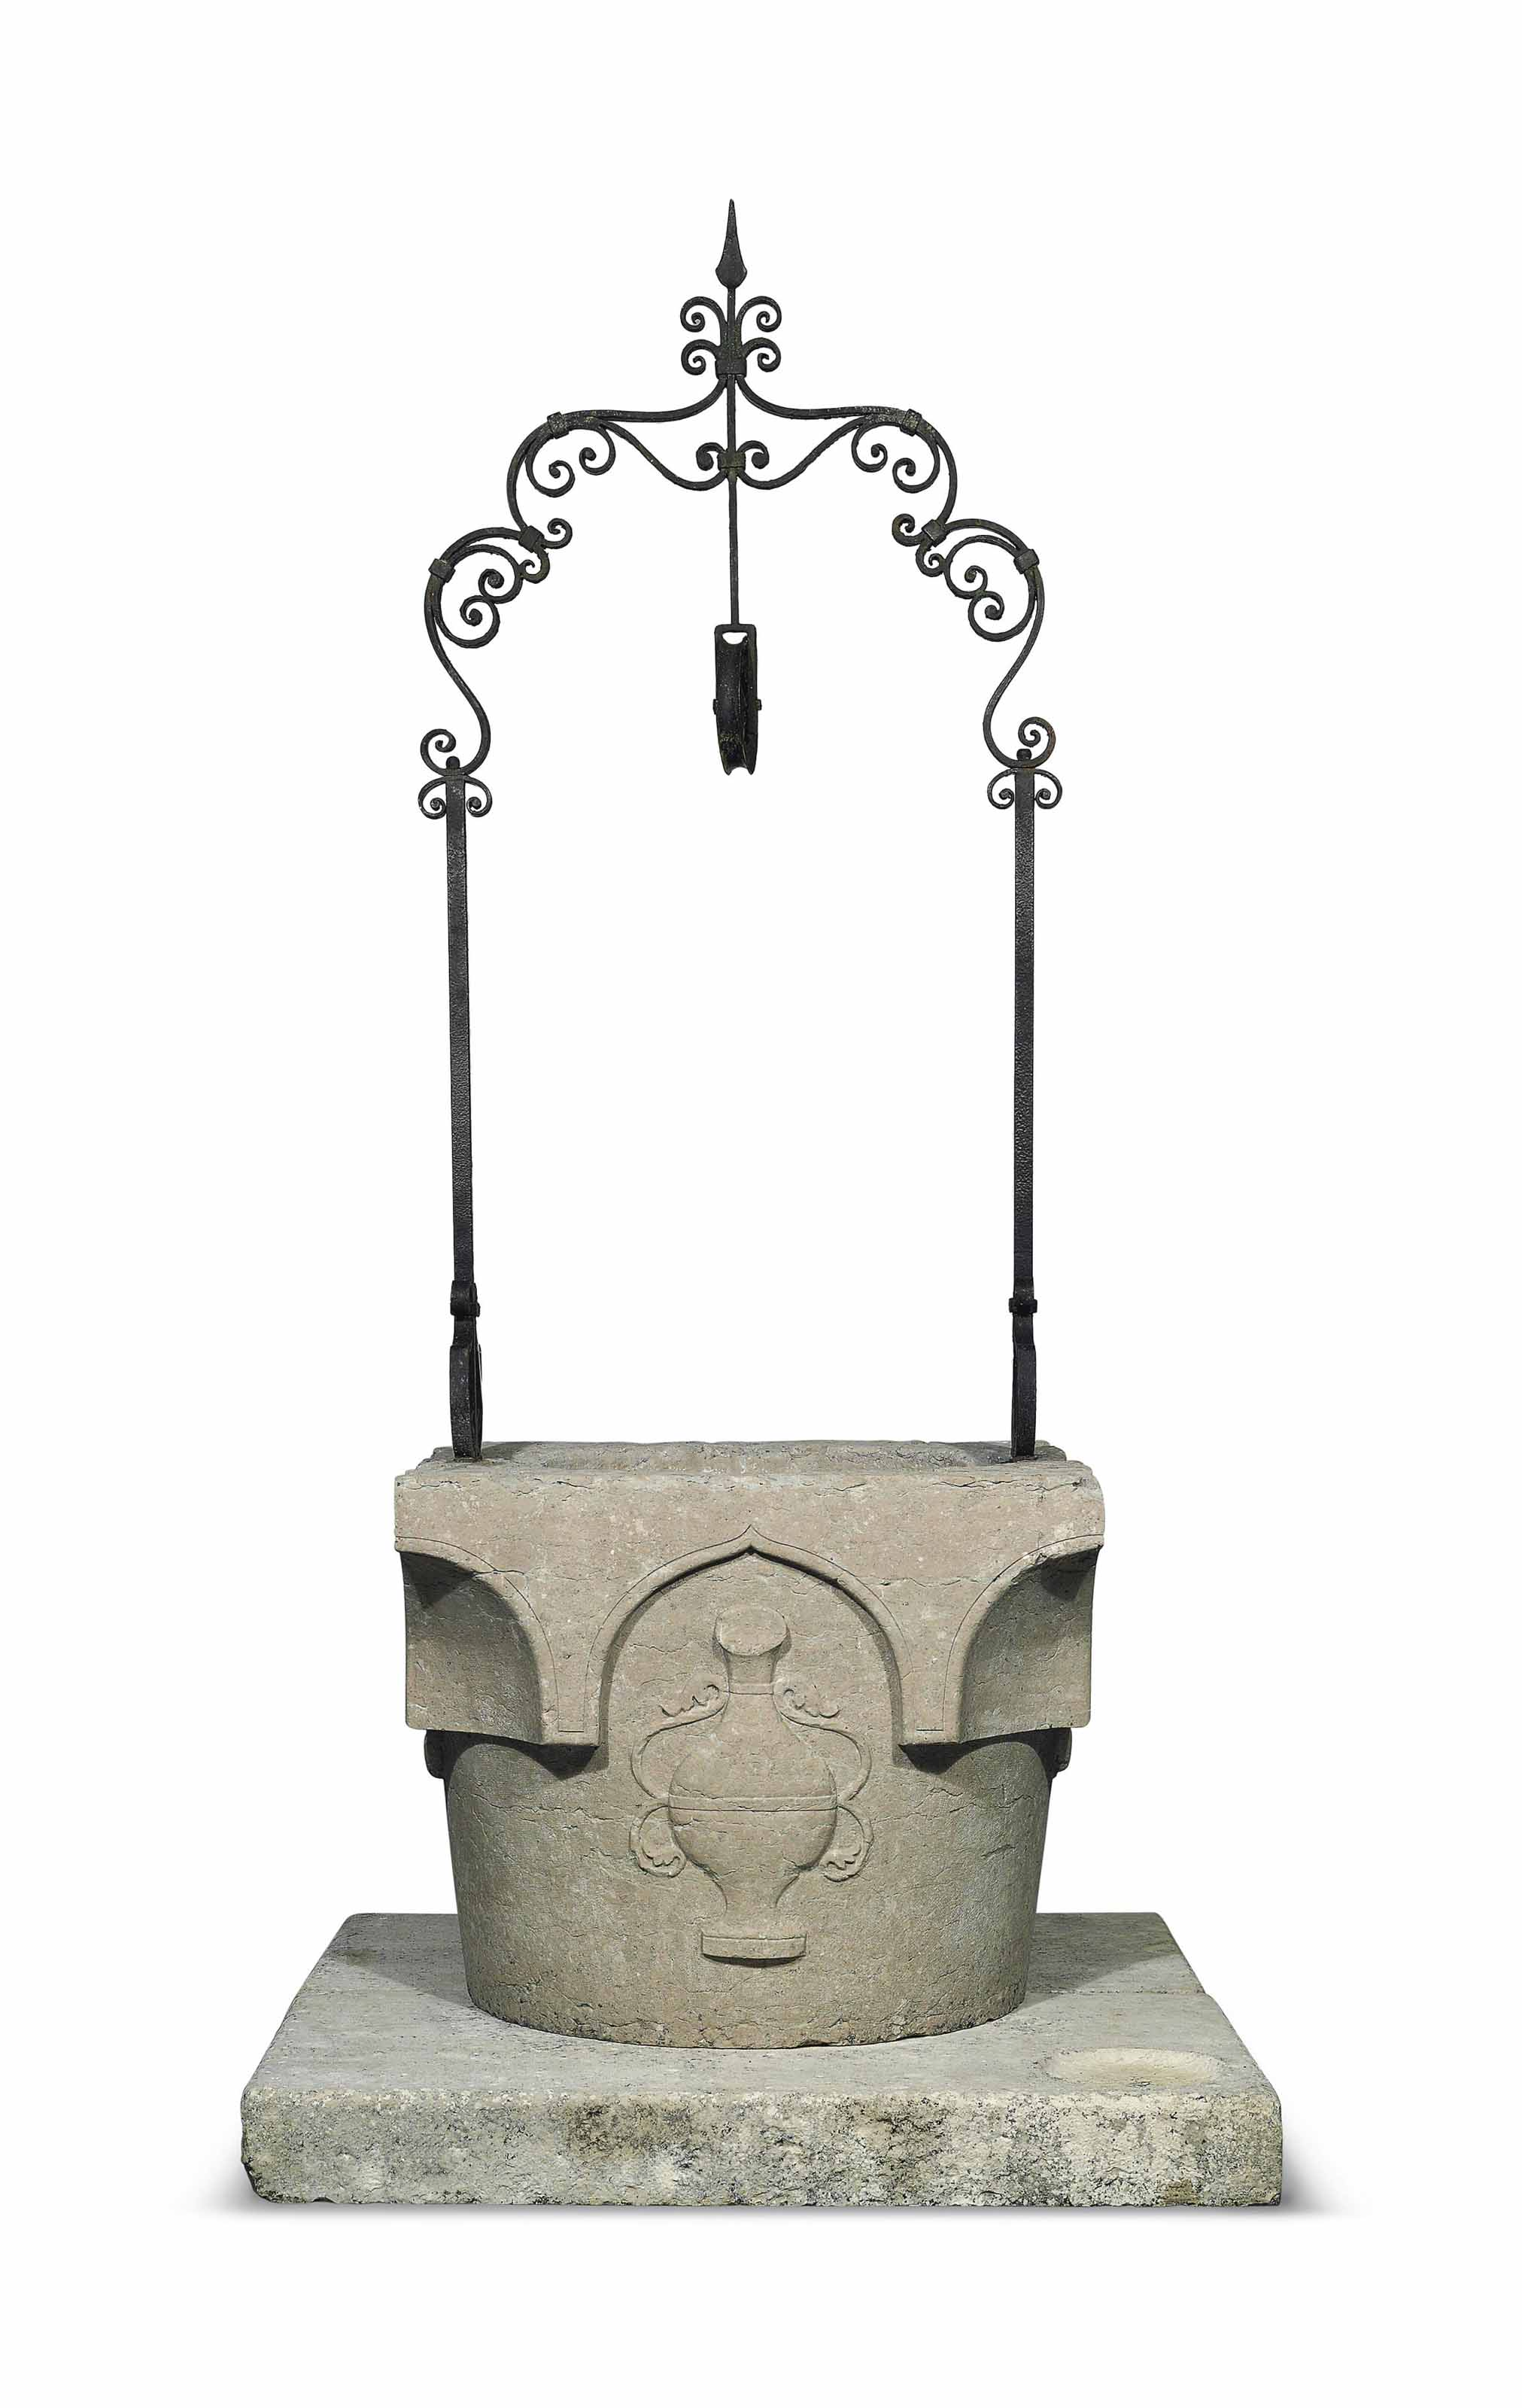 A CARVED ISTRIAN STONE WELL HE